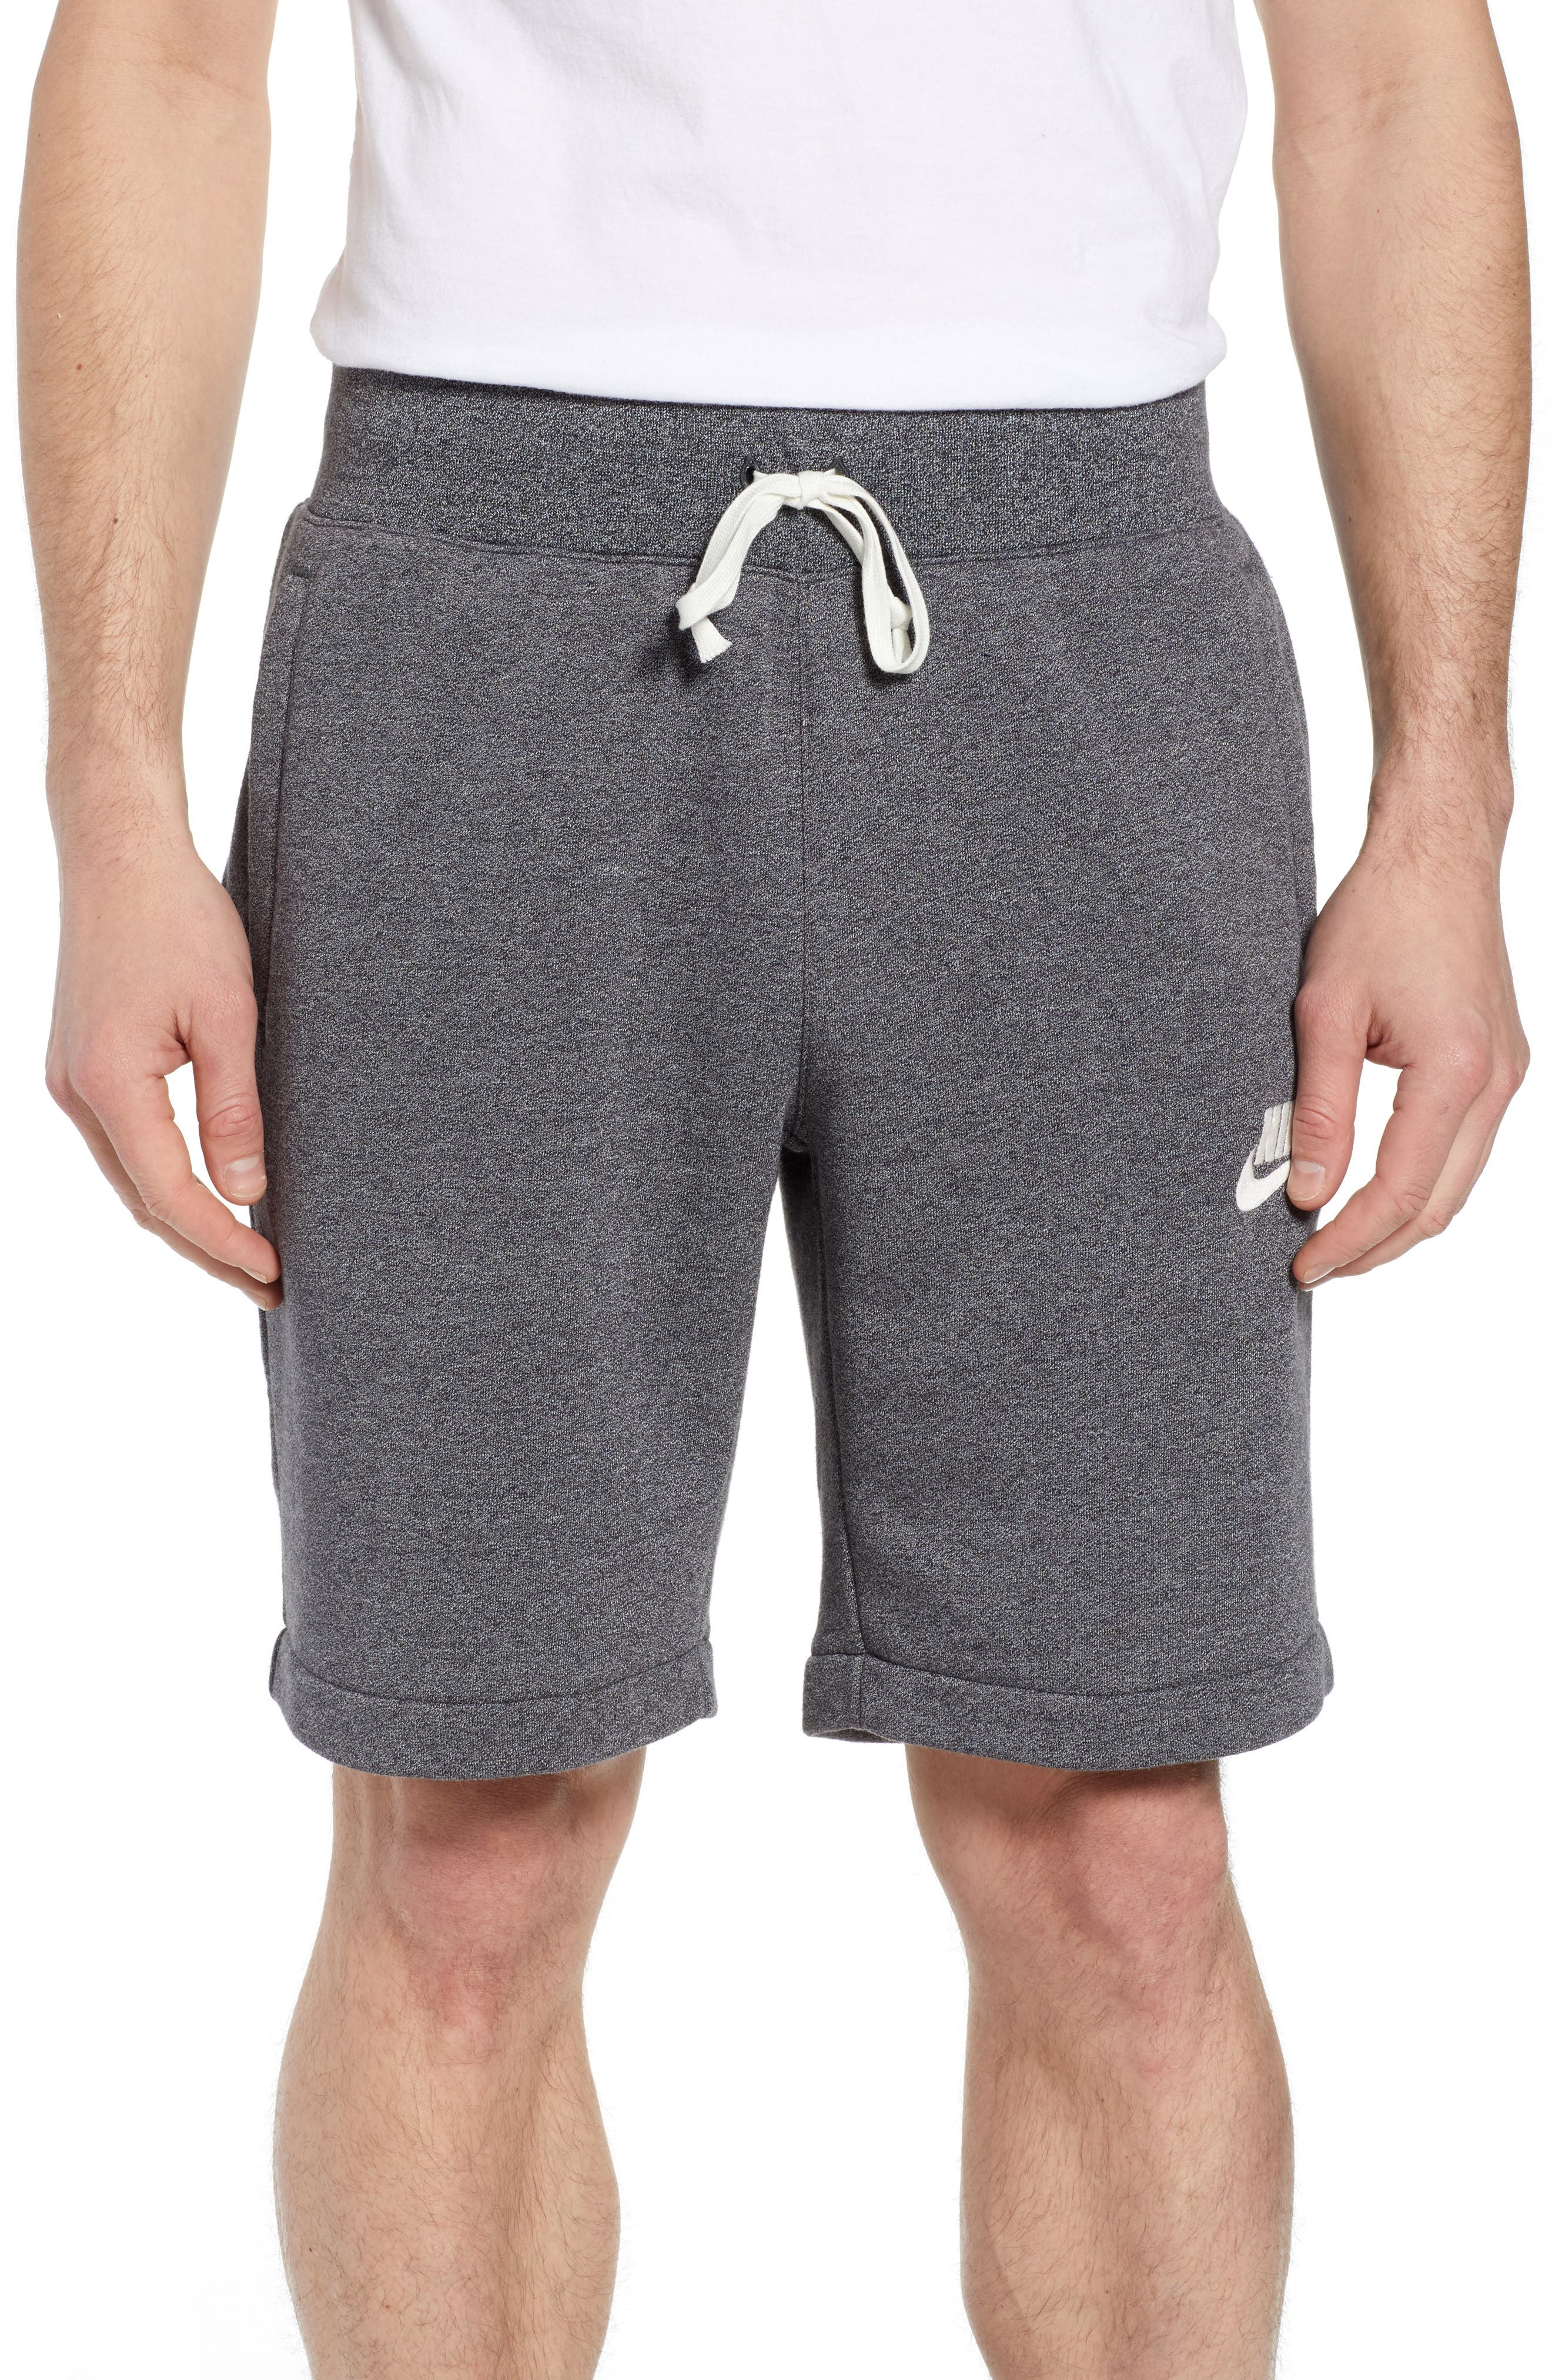 Heritage Knit Shorts,                             Main thumbnail 1, color,                             BLACK/ HEATHER/ SAIL